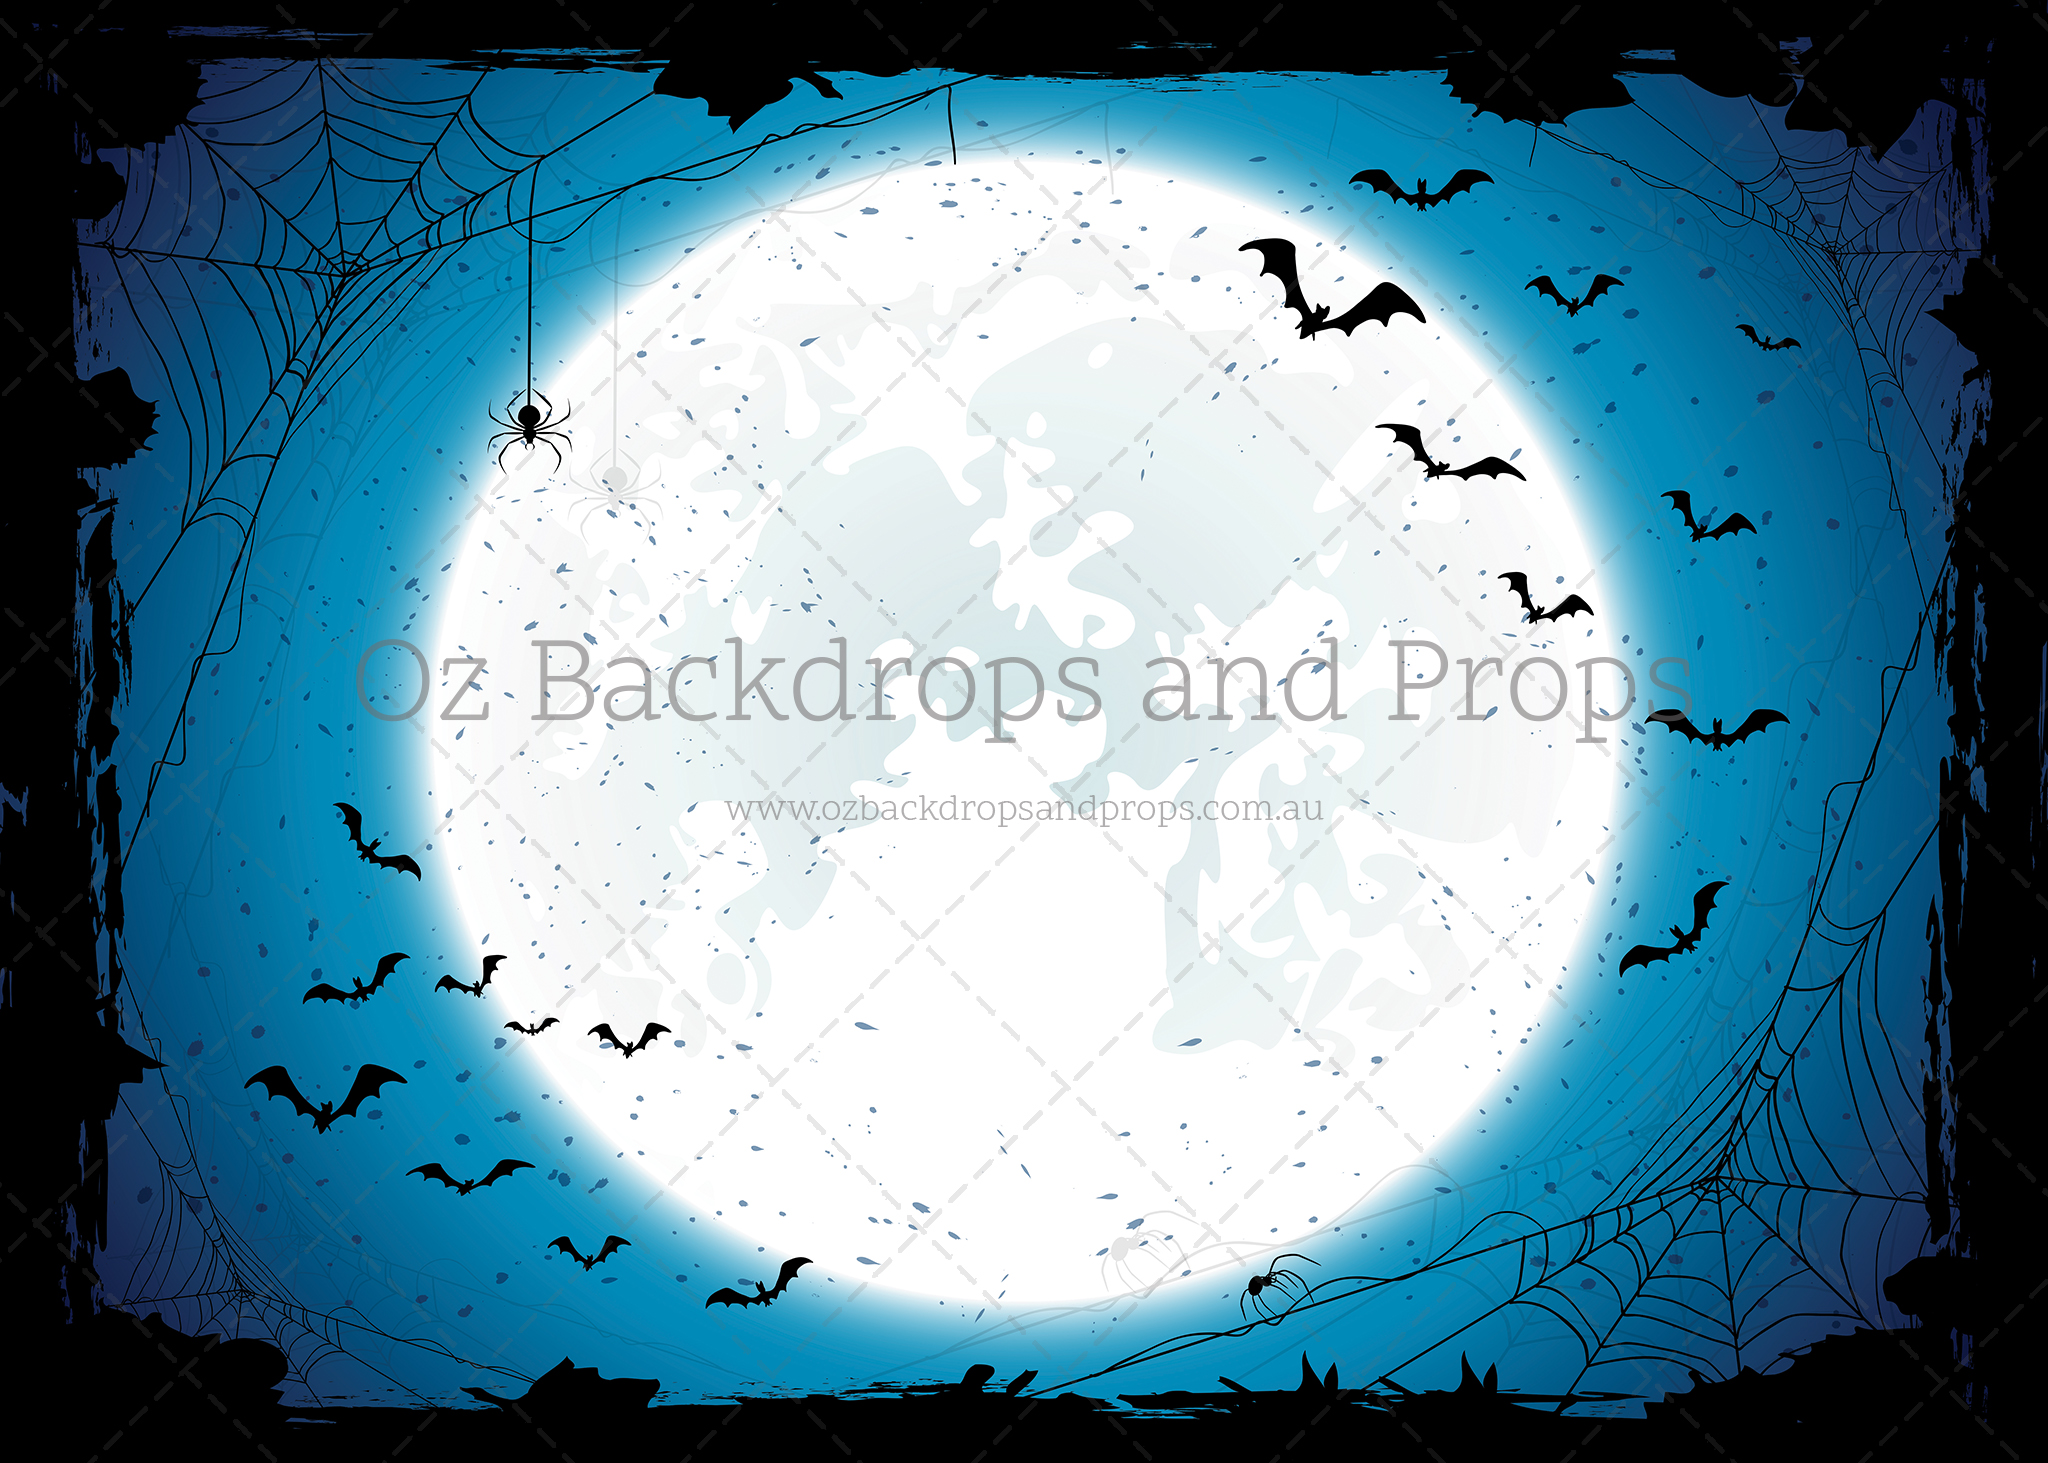 Spooky Spiders and Bats